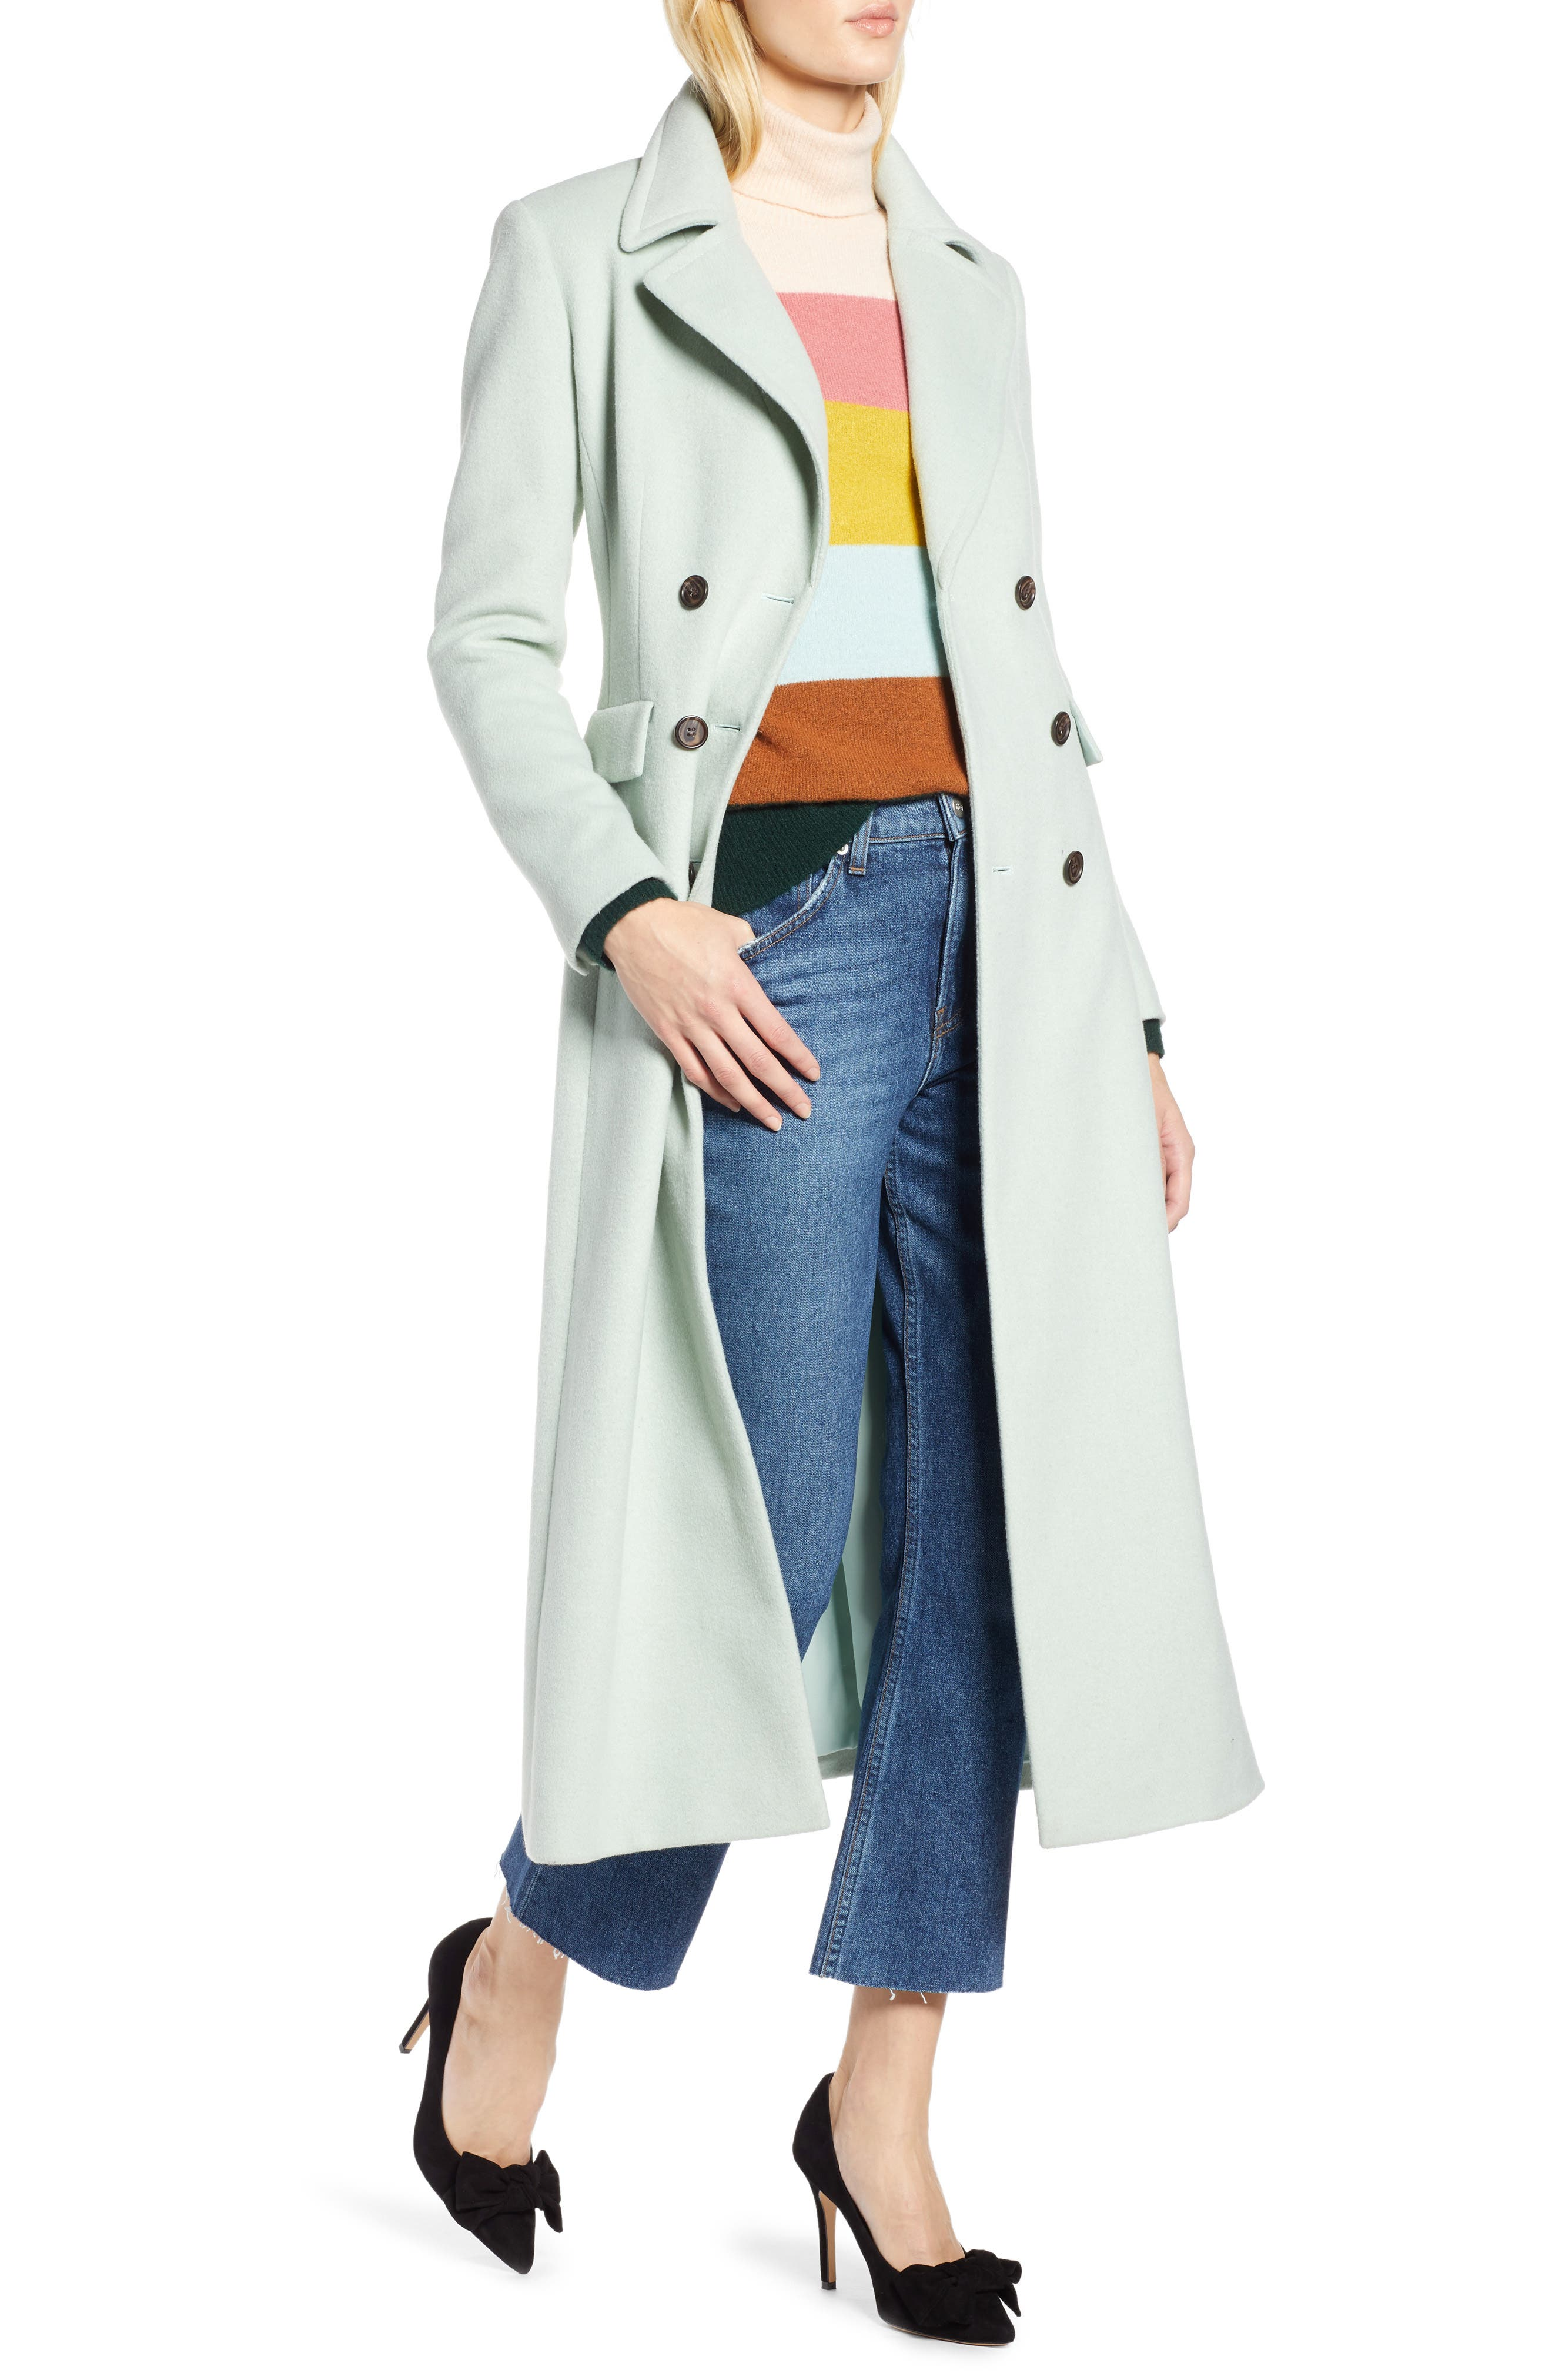 x Atlantic-Pacific Double Breasted Long Coat,                             Main thumbnail 1, color,                             330